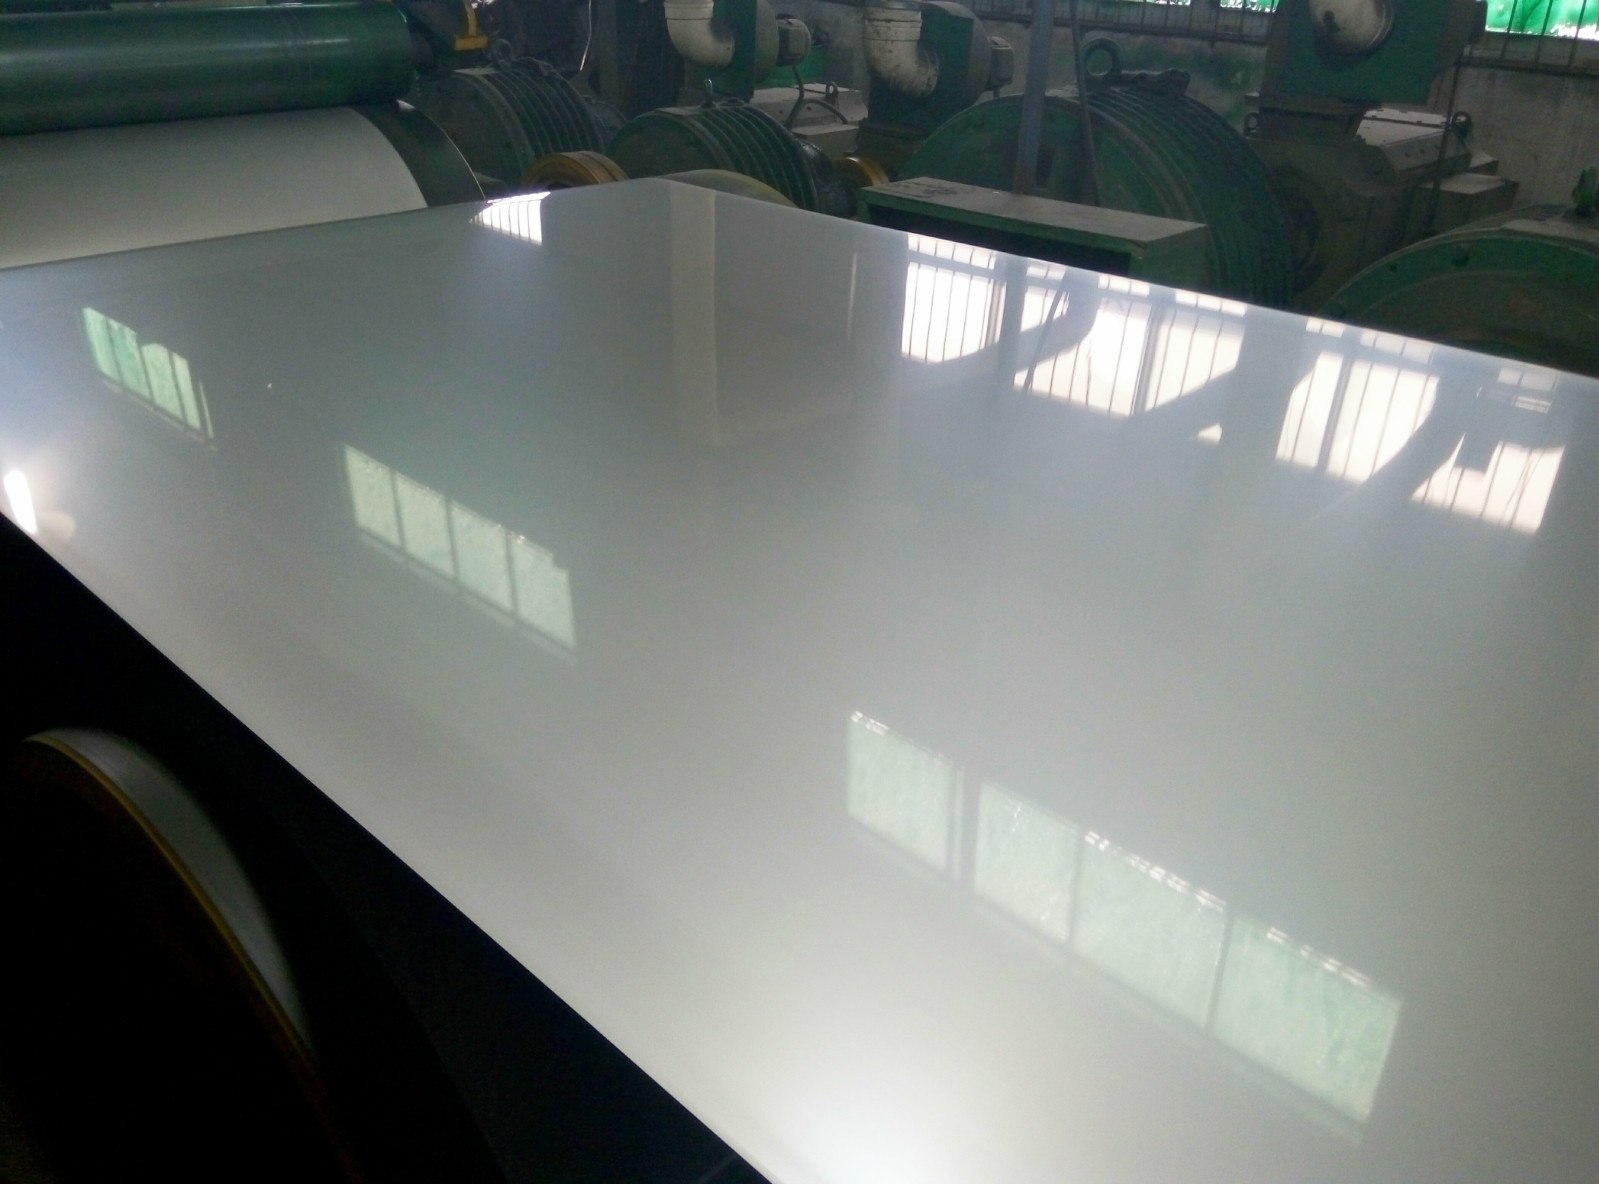 J≃ Material Cold Rolled &⪞ Apdot; 01 Stainless Steel Coil &⪞ Apdot; B